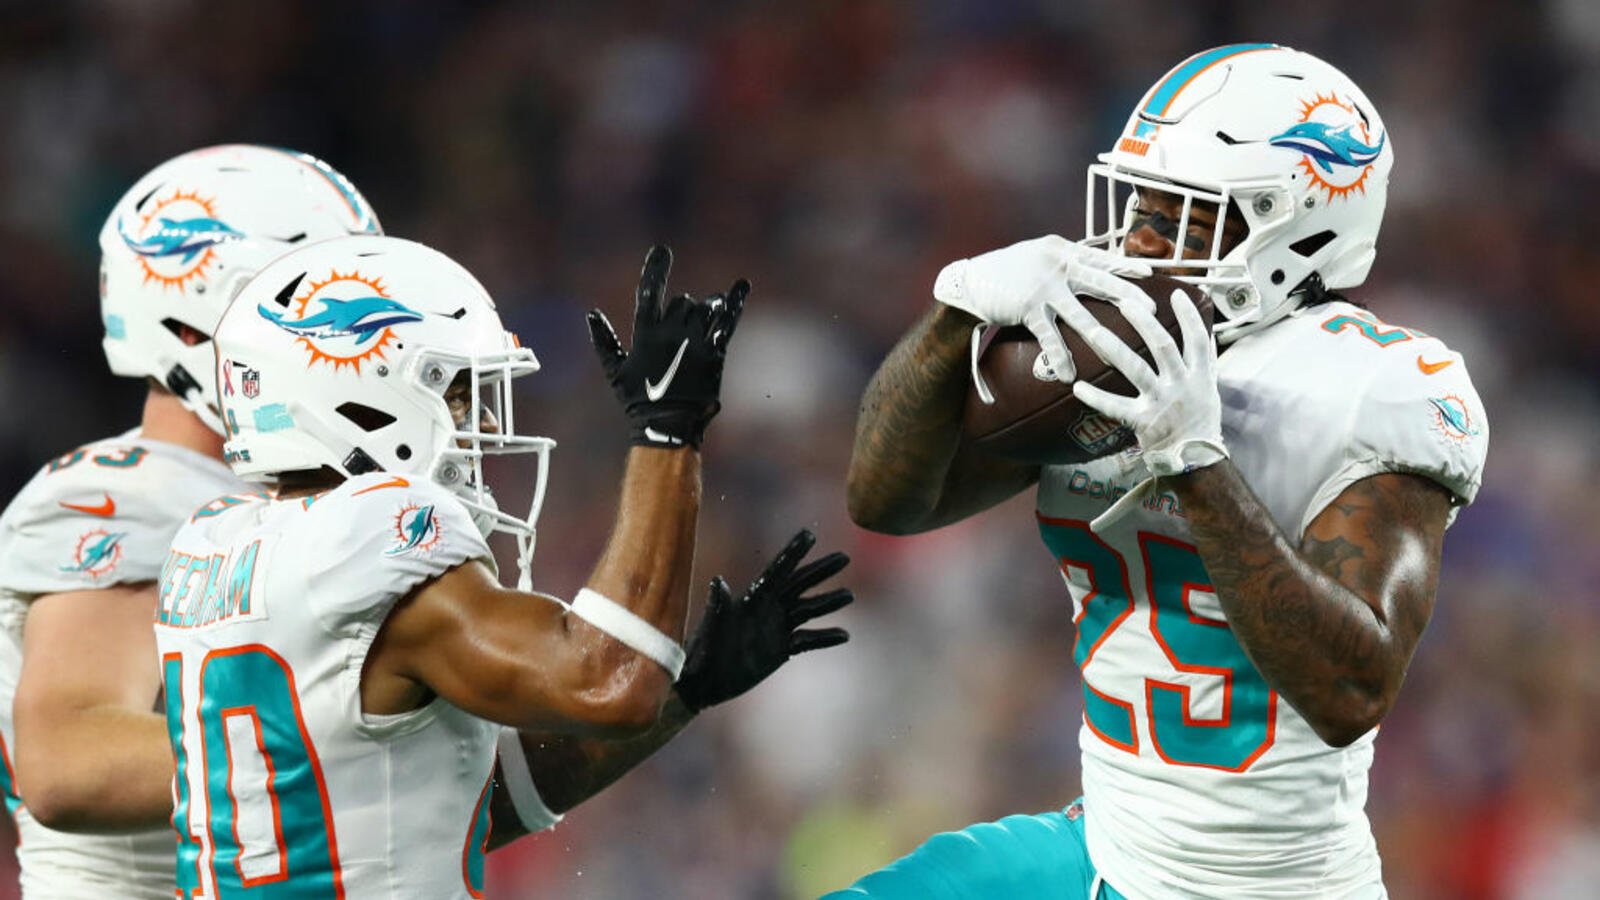 Lubie's Law: Phins FEEL Different?!